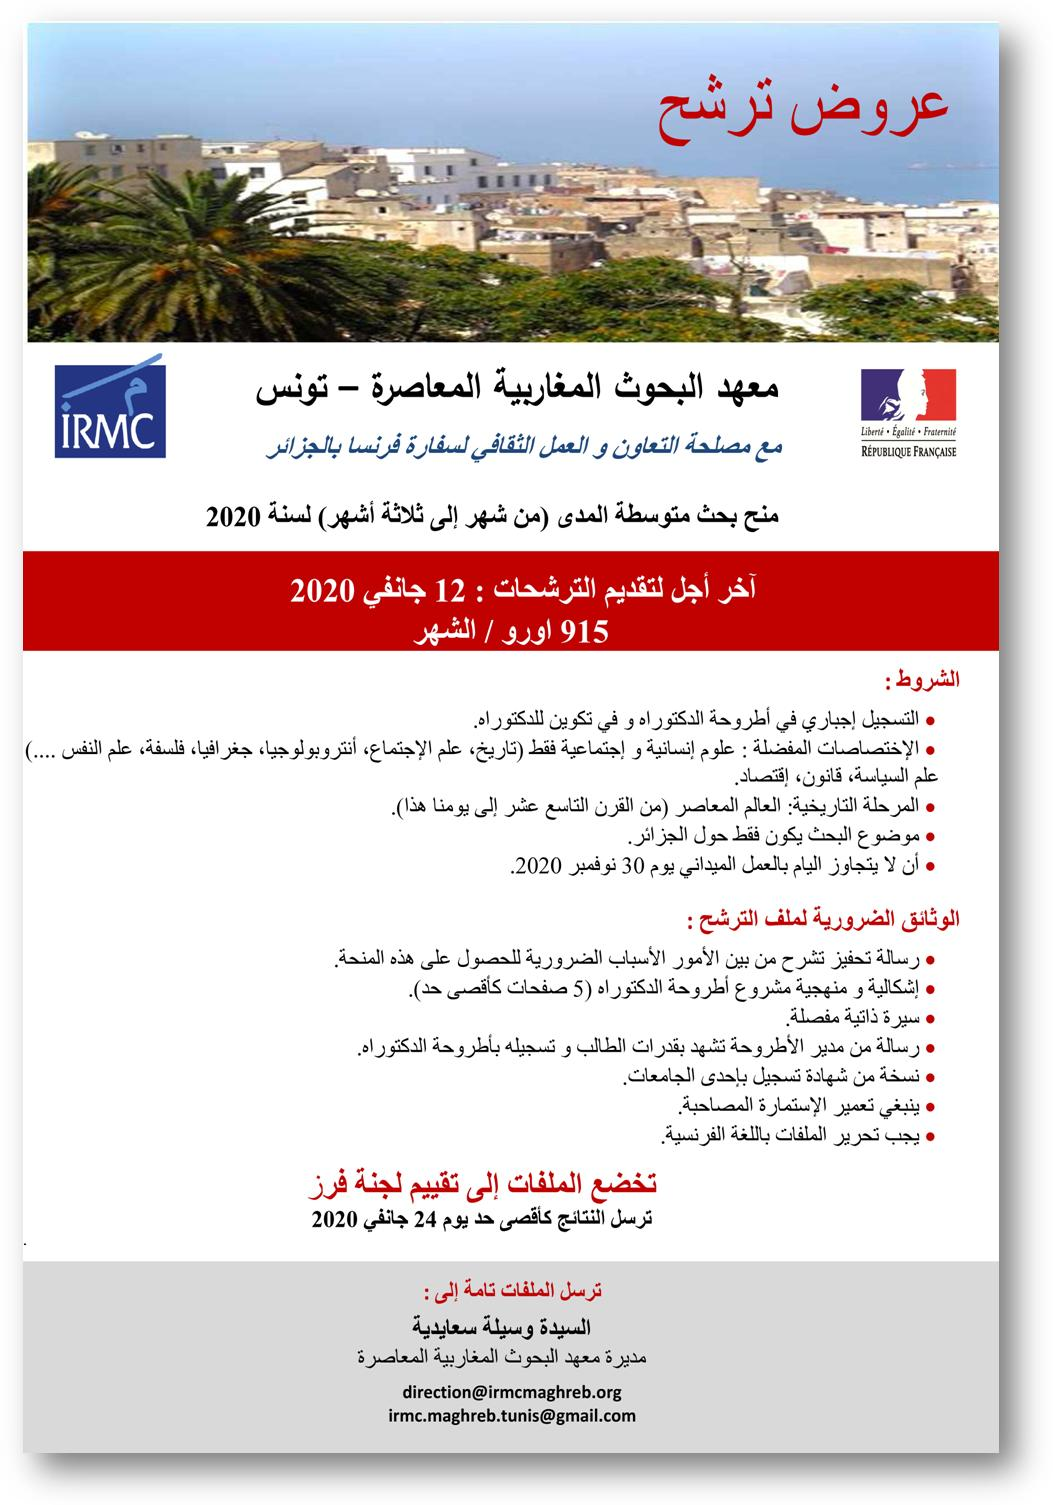 IRMC call for applications